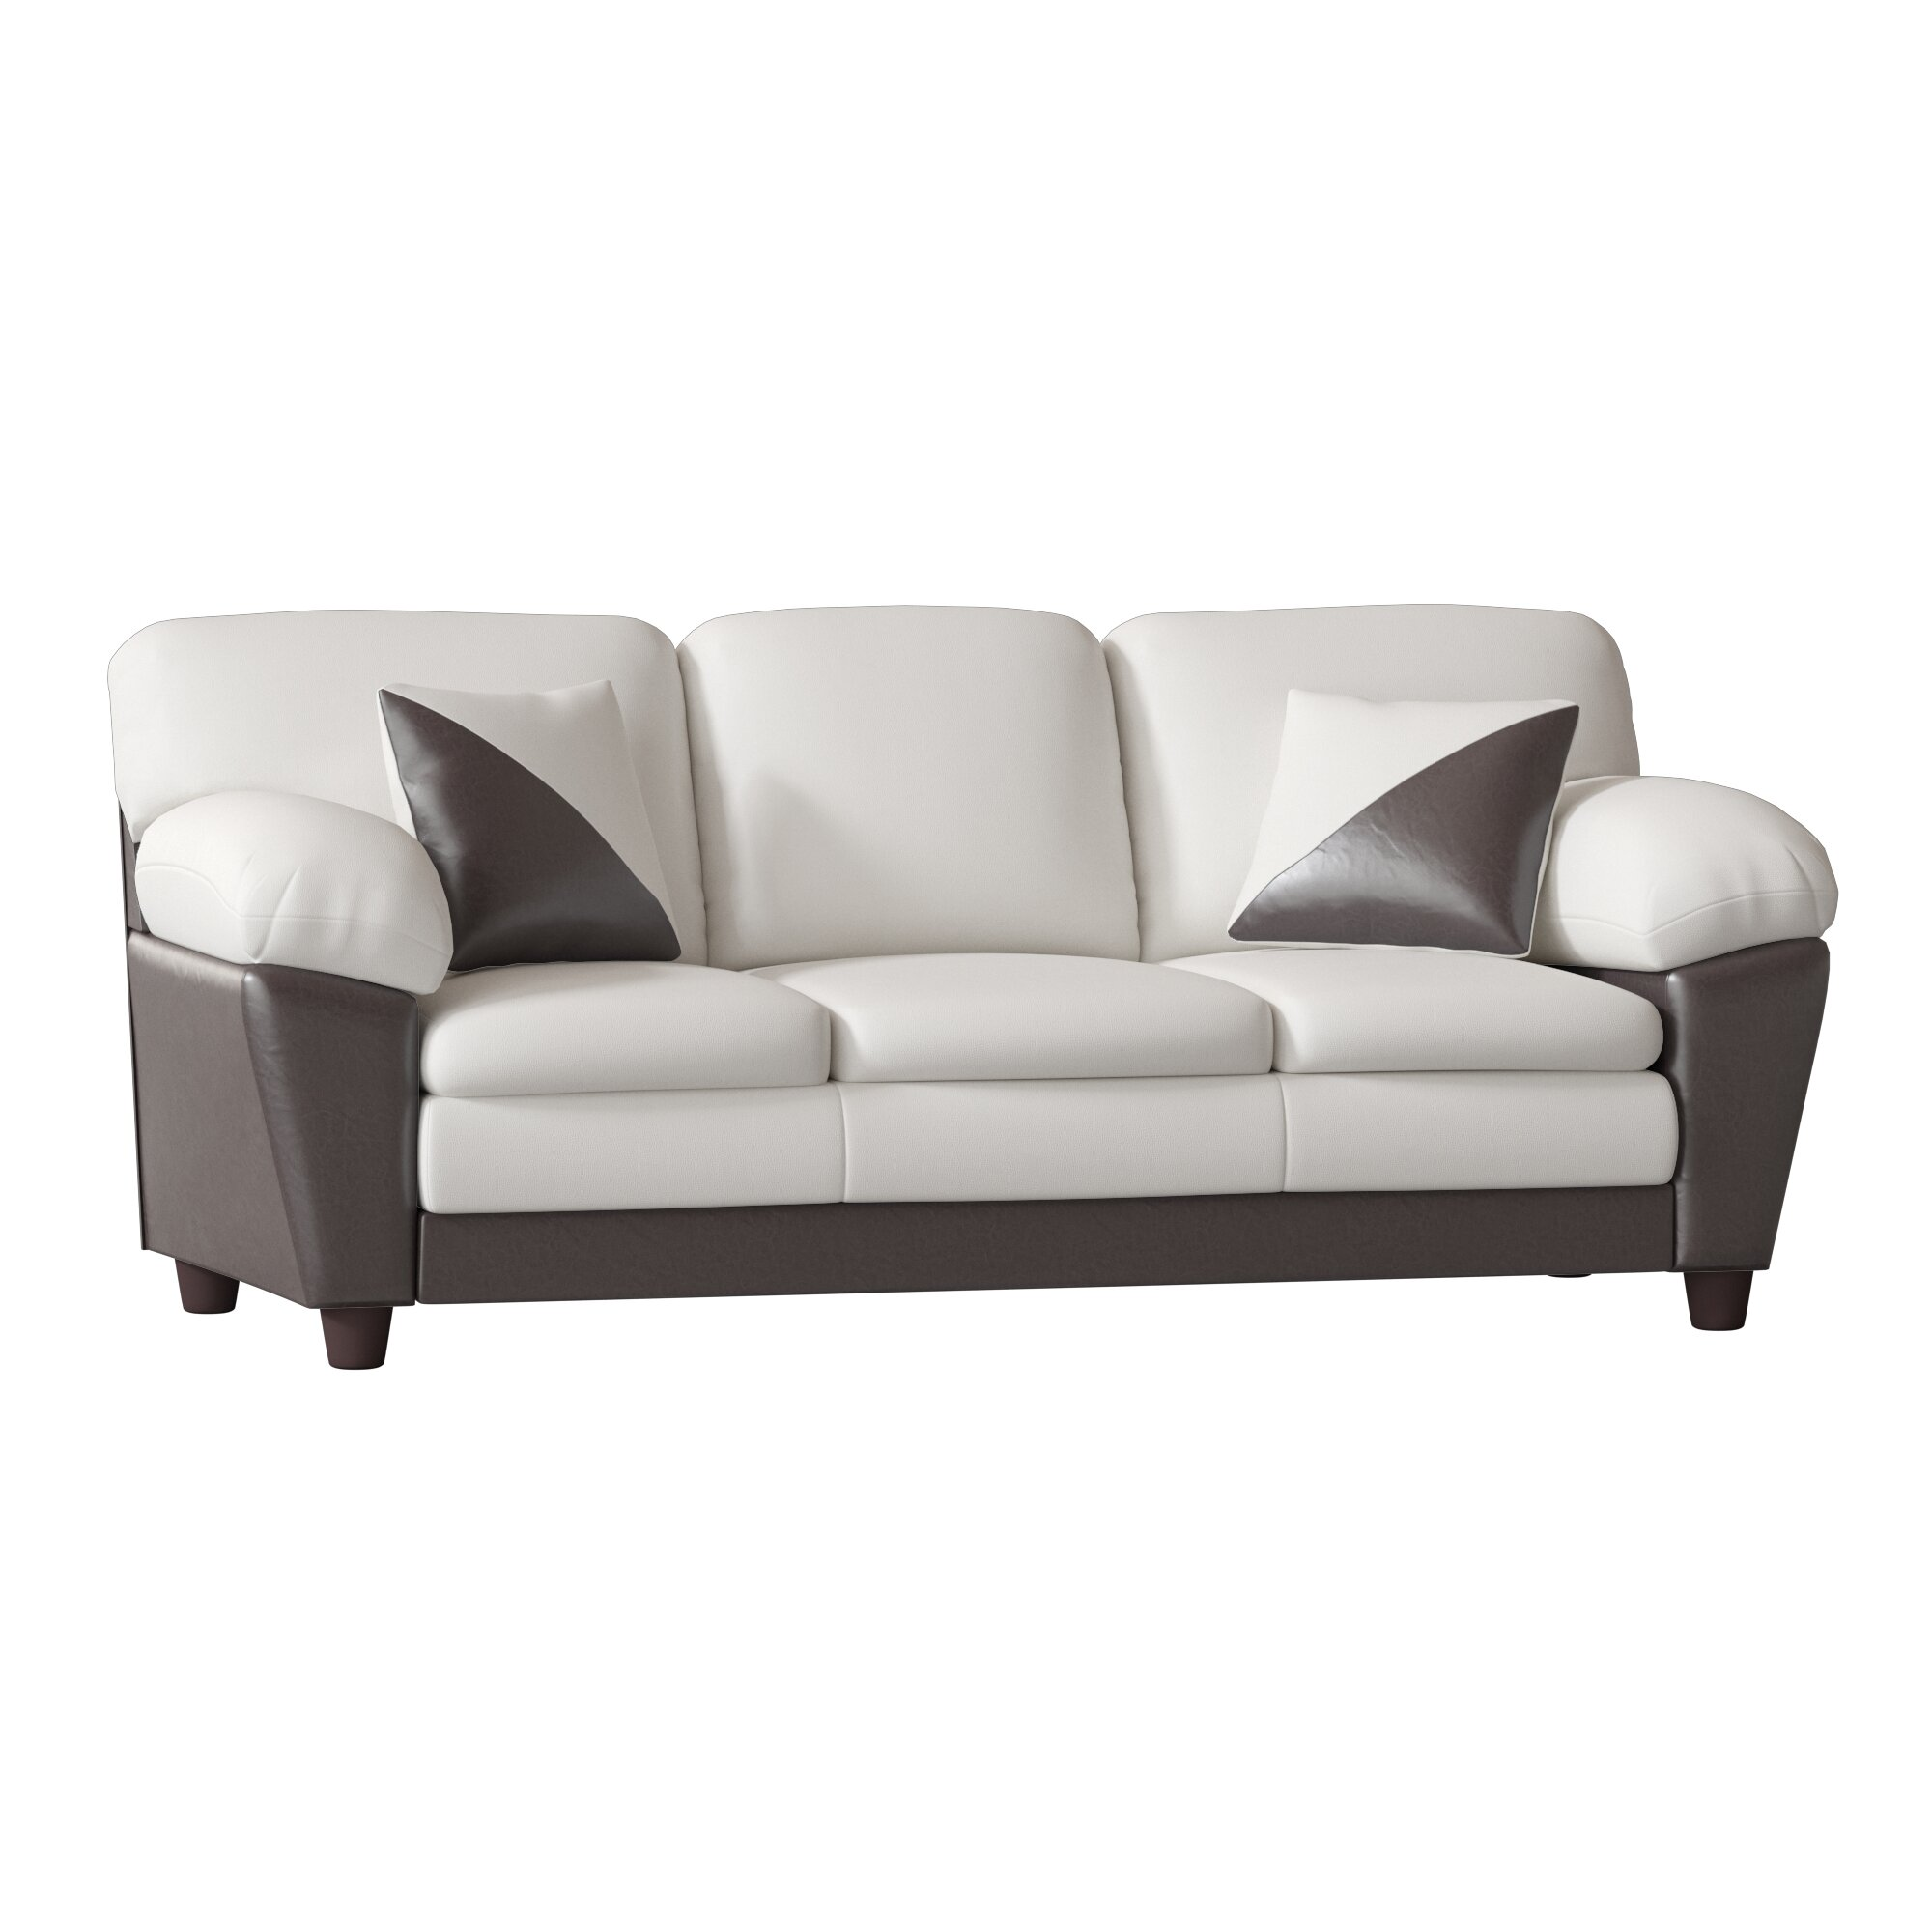 Bon Piedmont Furniture Brooklyn Sofa | Wayfair